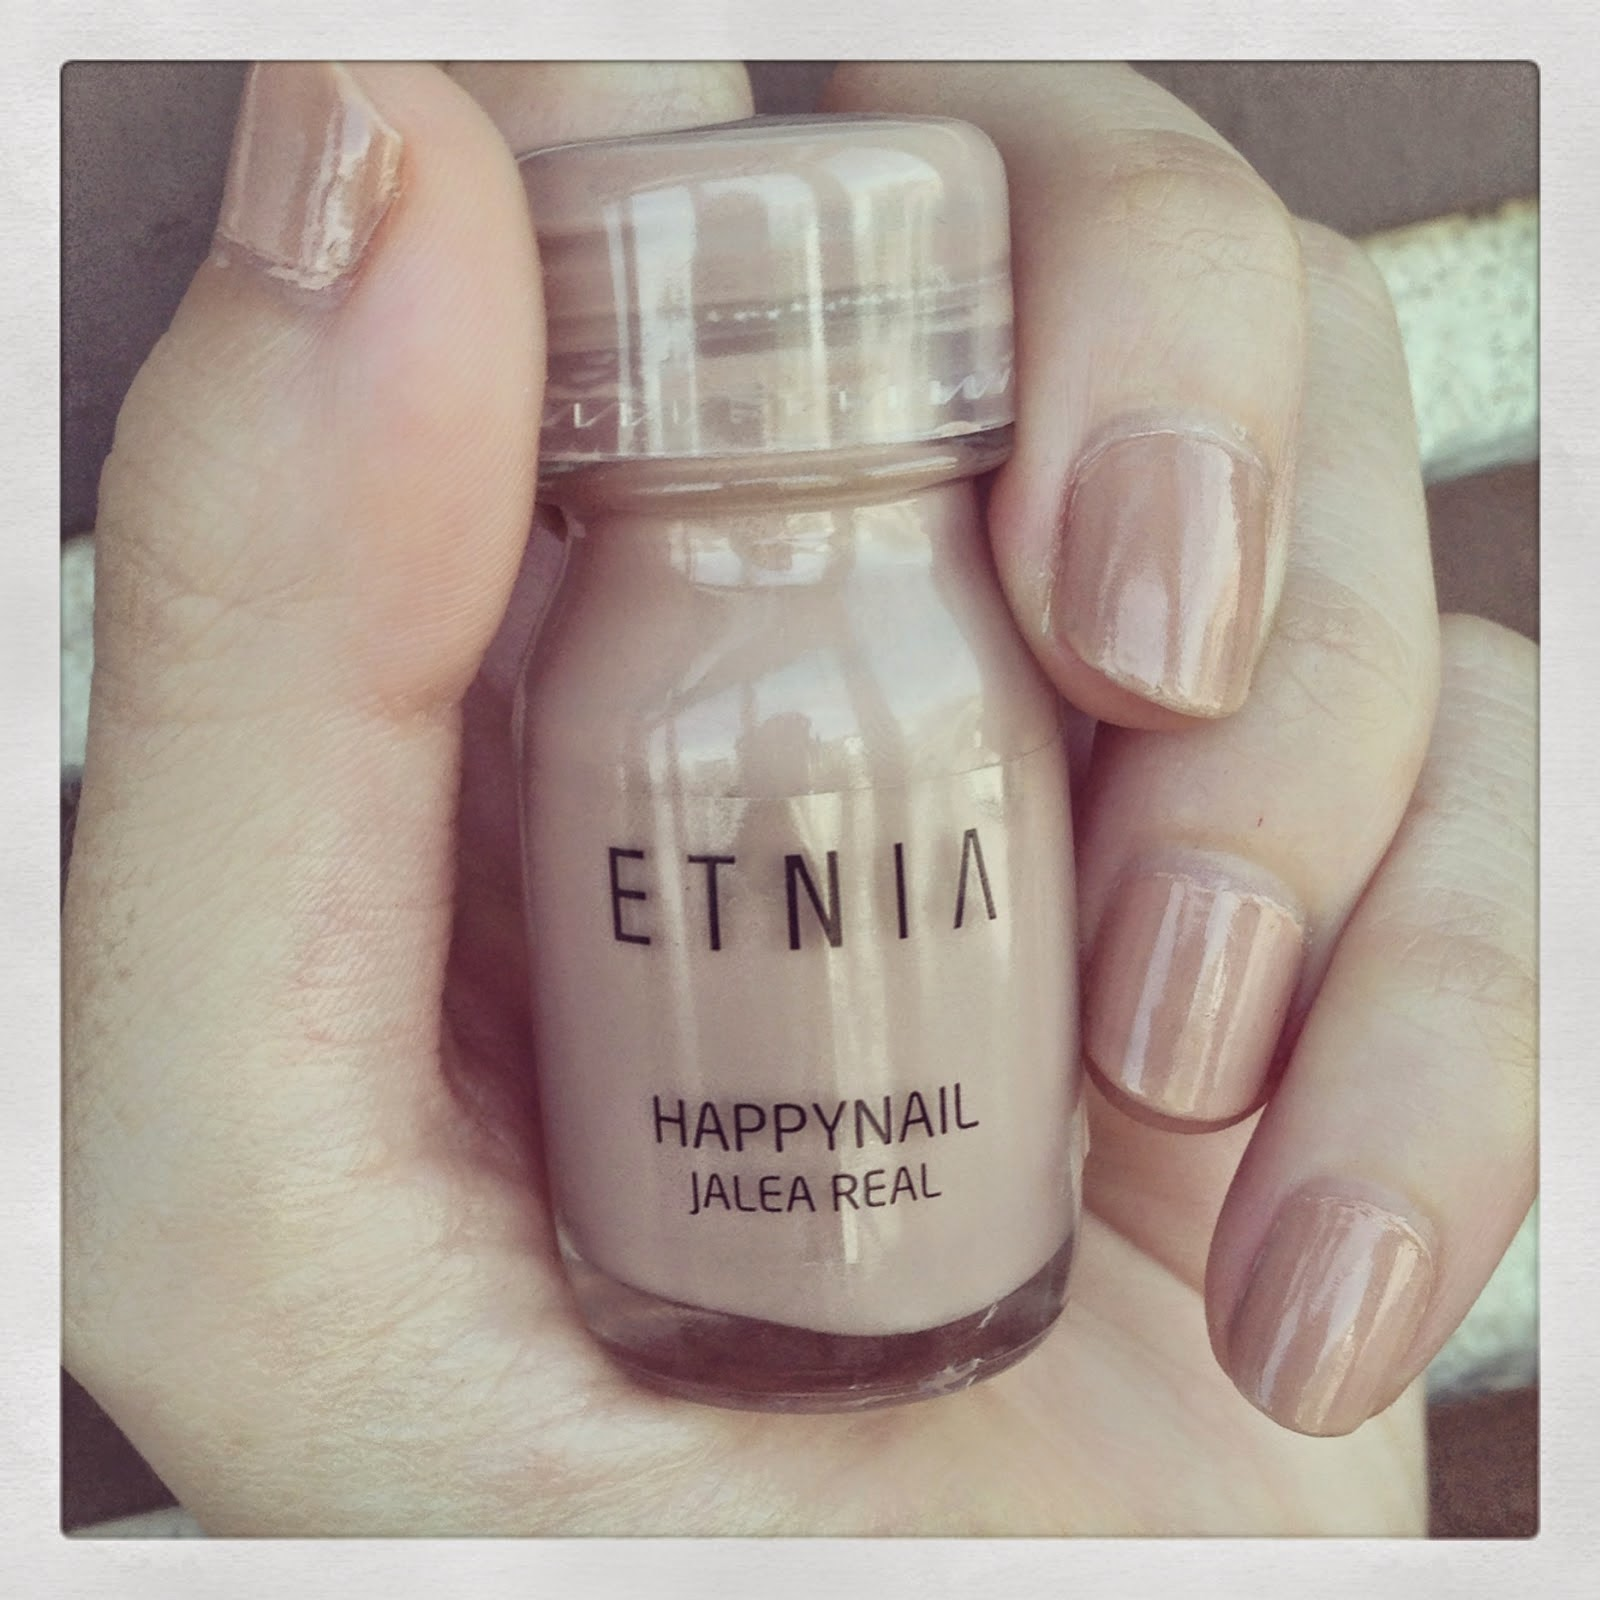 Jalea Real Happynail Etnia Cosmetics